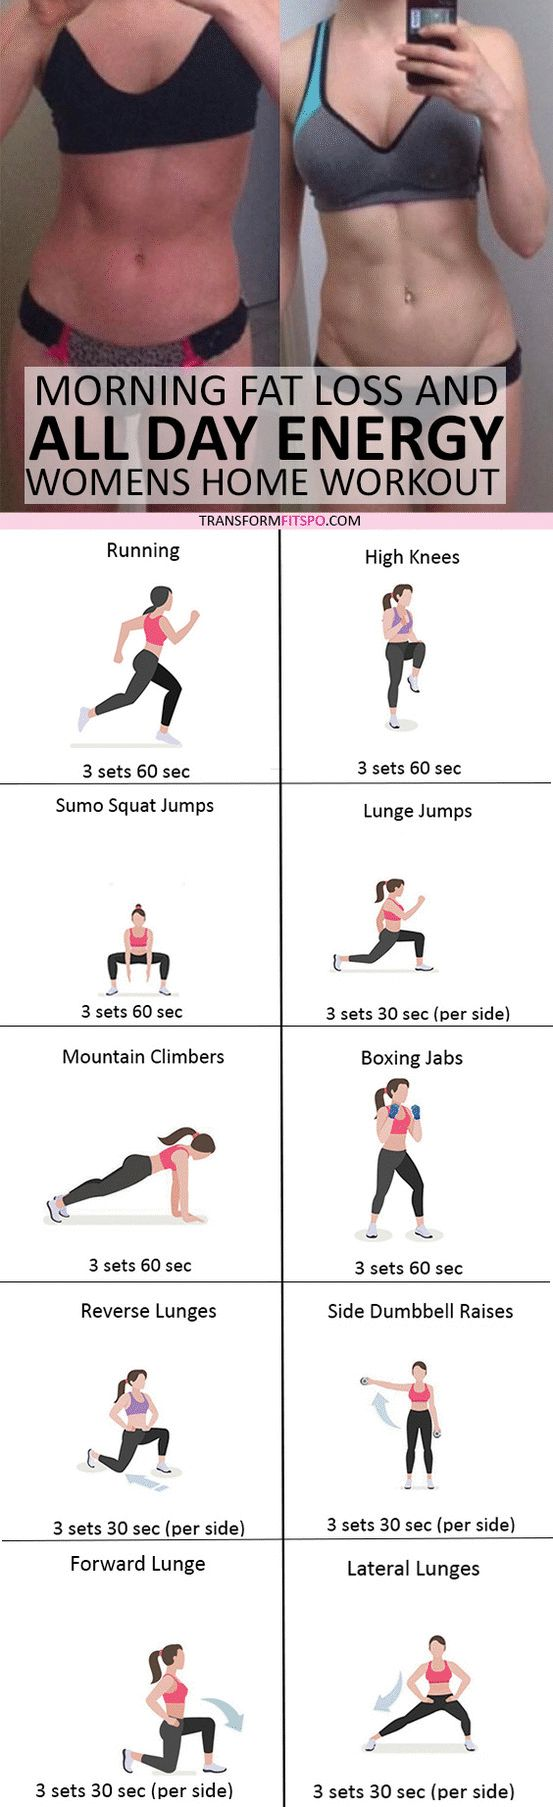 #womensworkout #workout #femalefitness Repin and share if this workout gave you all day energy! Click the pin for the full workout.